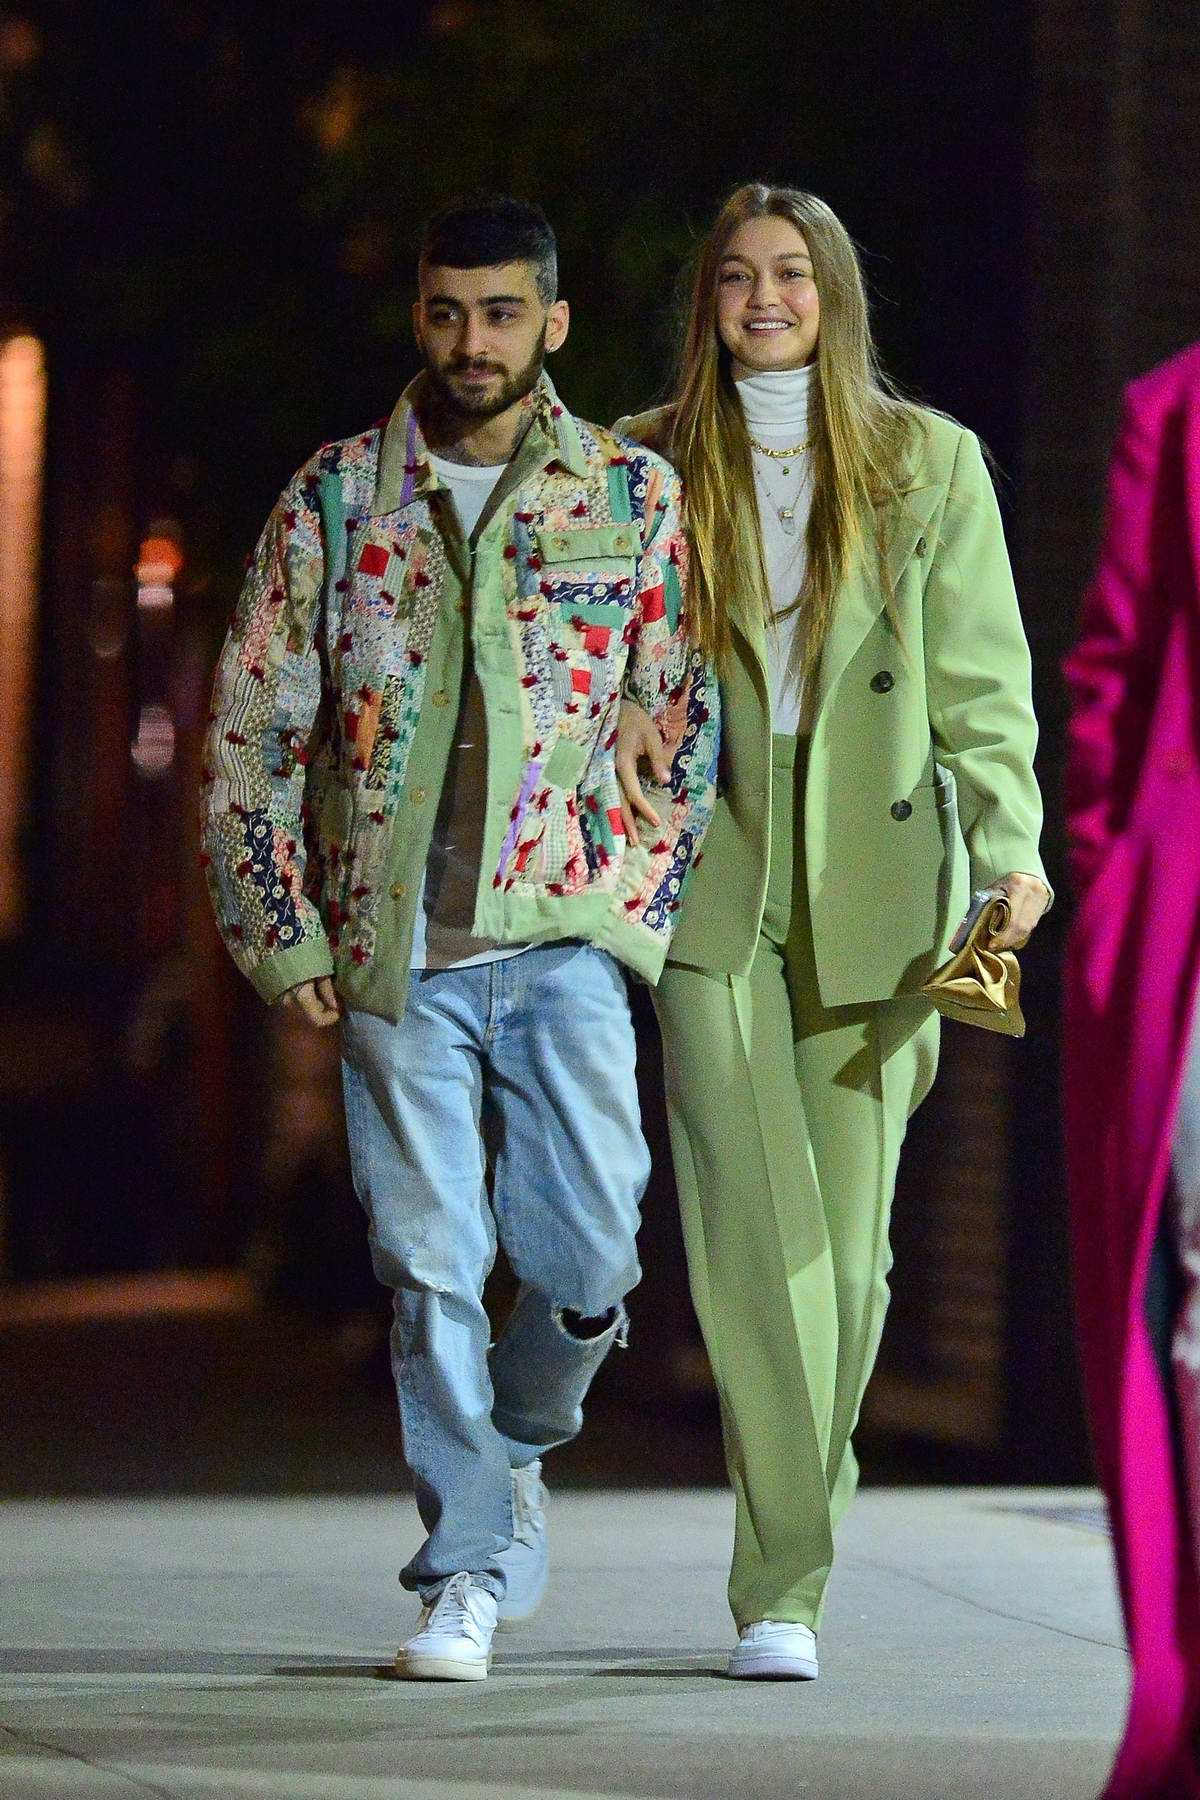 Gigi Hadid and Zayn Malik are all smiles as they step out for Zayn's birthday with Bella Hadid and Dua Lipa in New York City